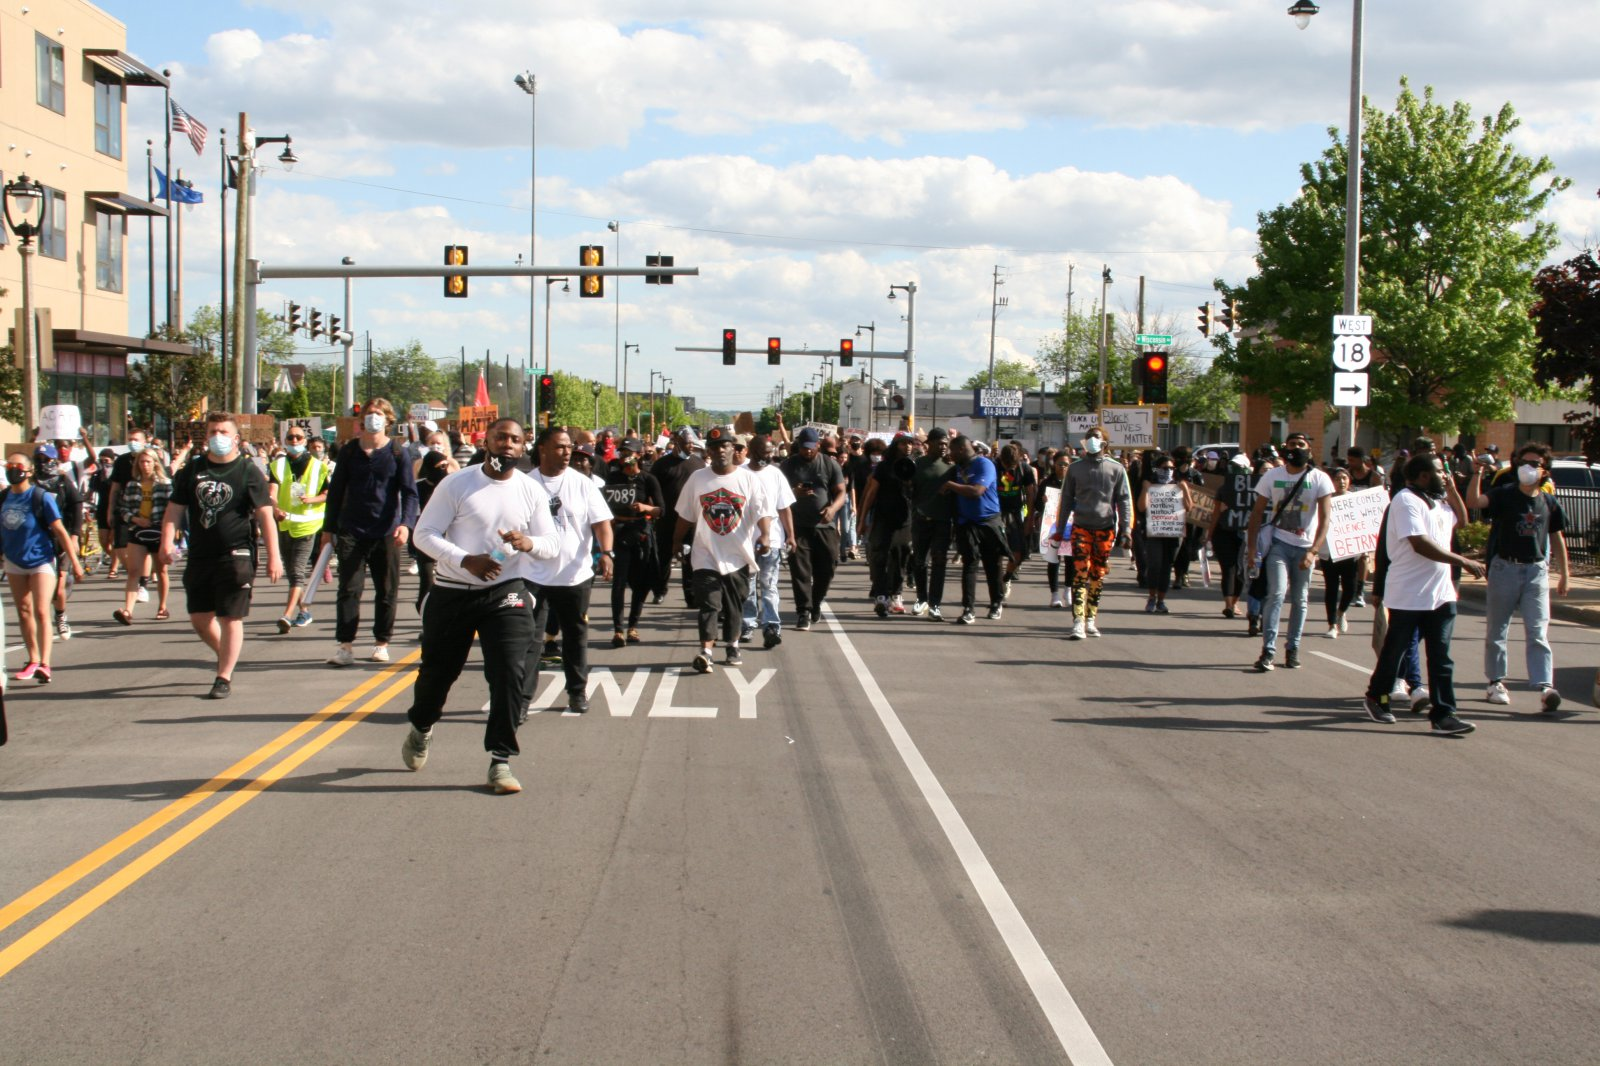 March North on N. 35th St.